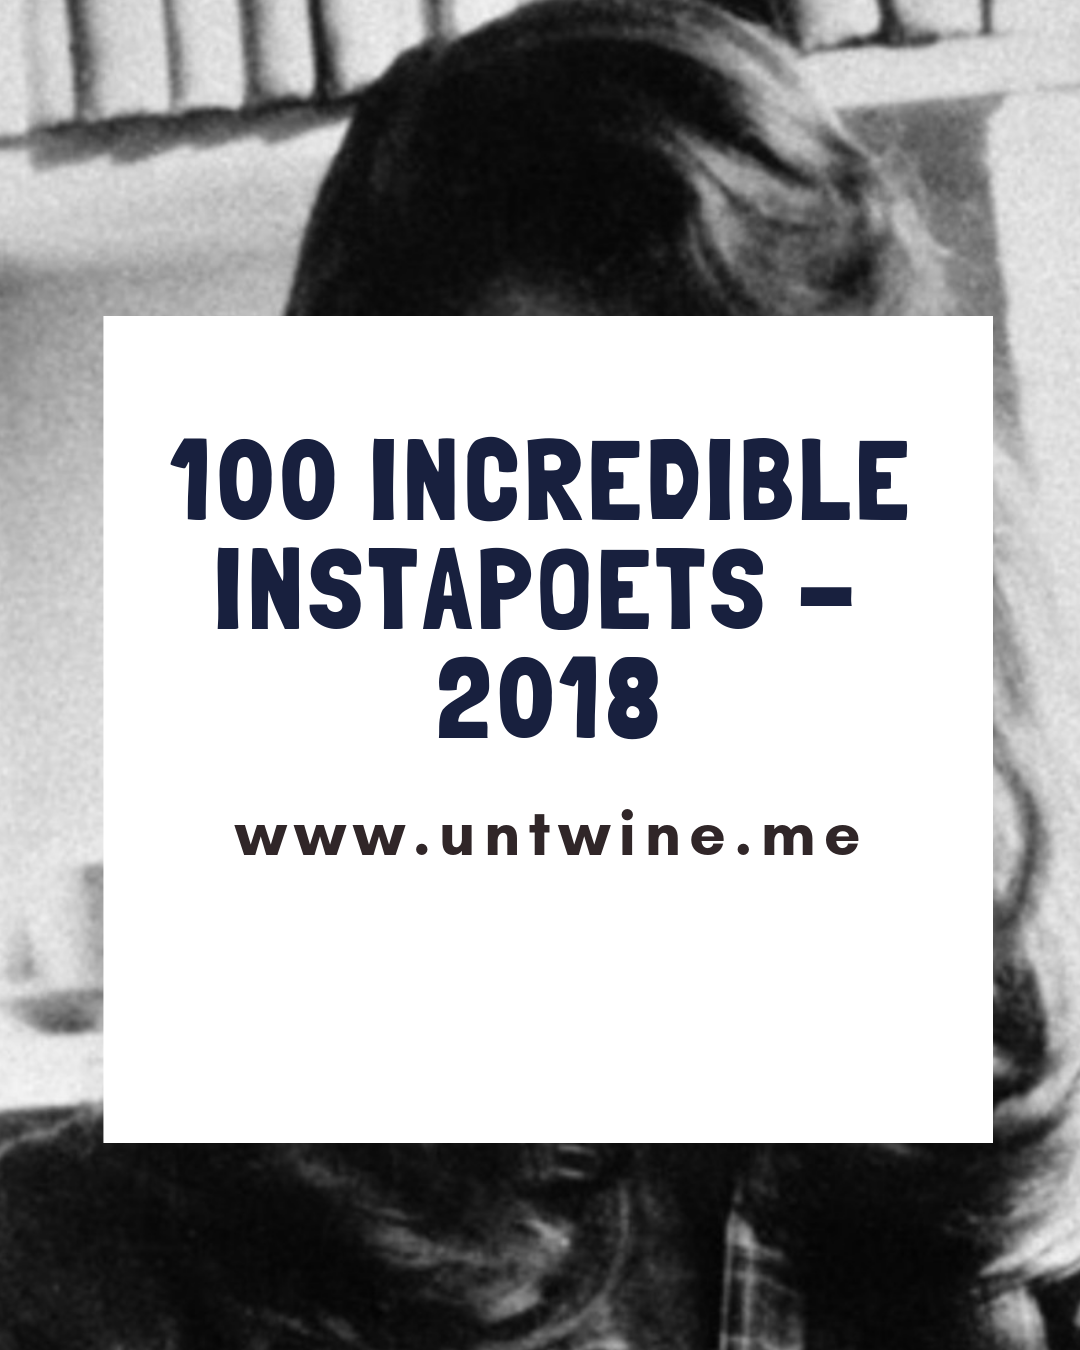 100 INCREDIBLE INSTAPOETS OF 2018: SUSAN BE POETRY